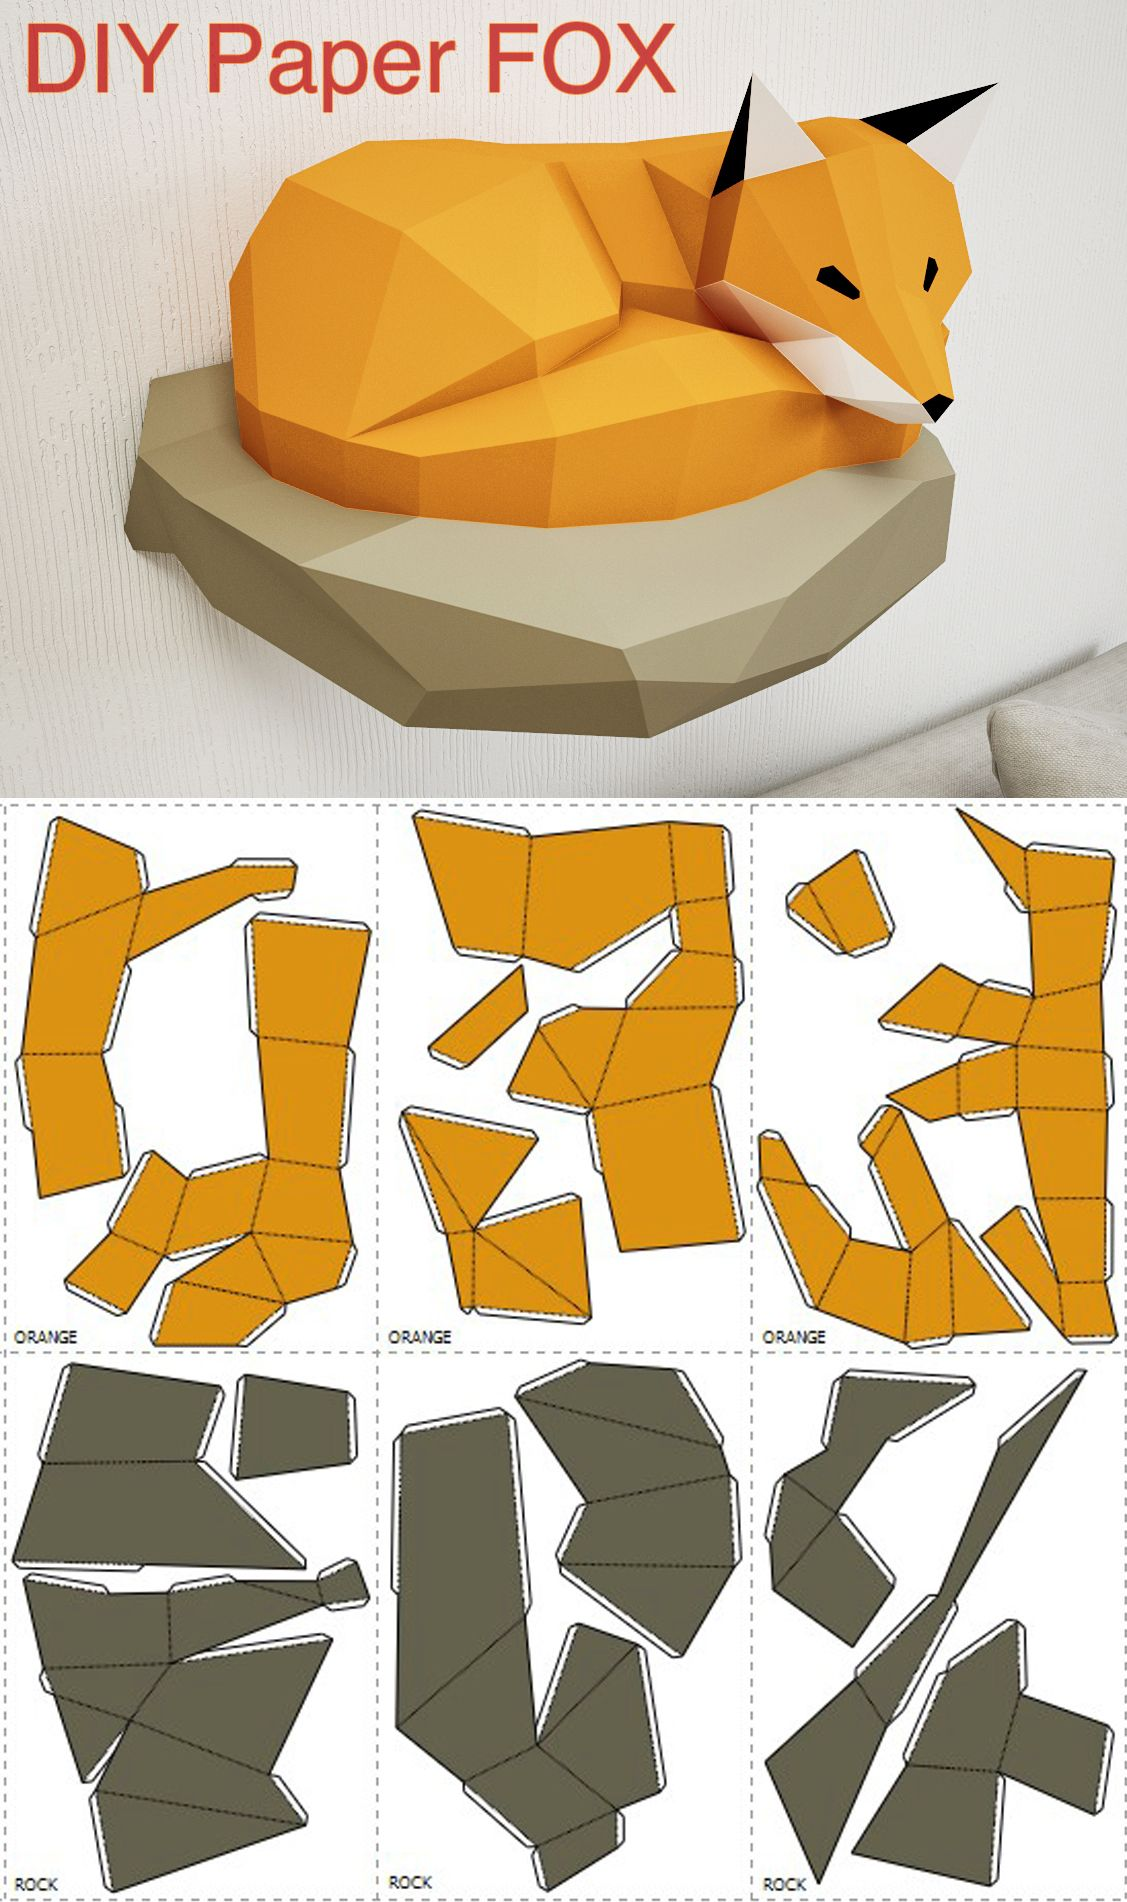 Diy papercraft fox 3d paper model on the wall diy home for Diy 3d art